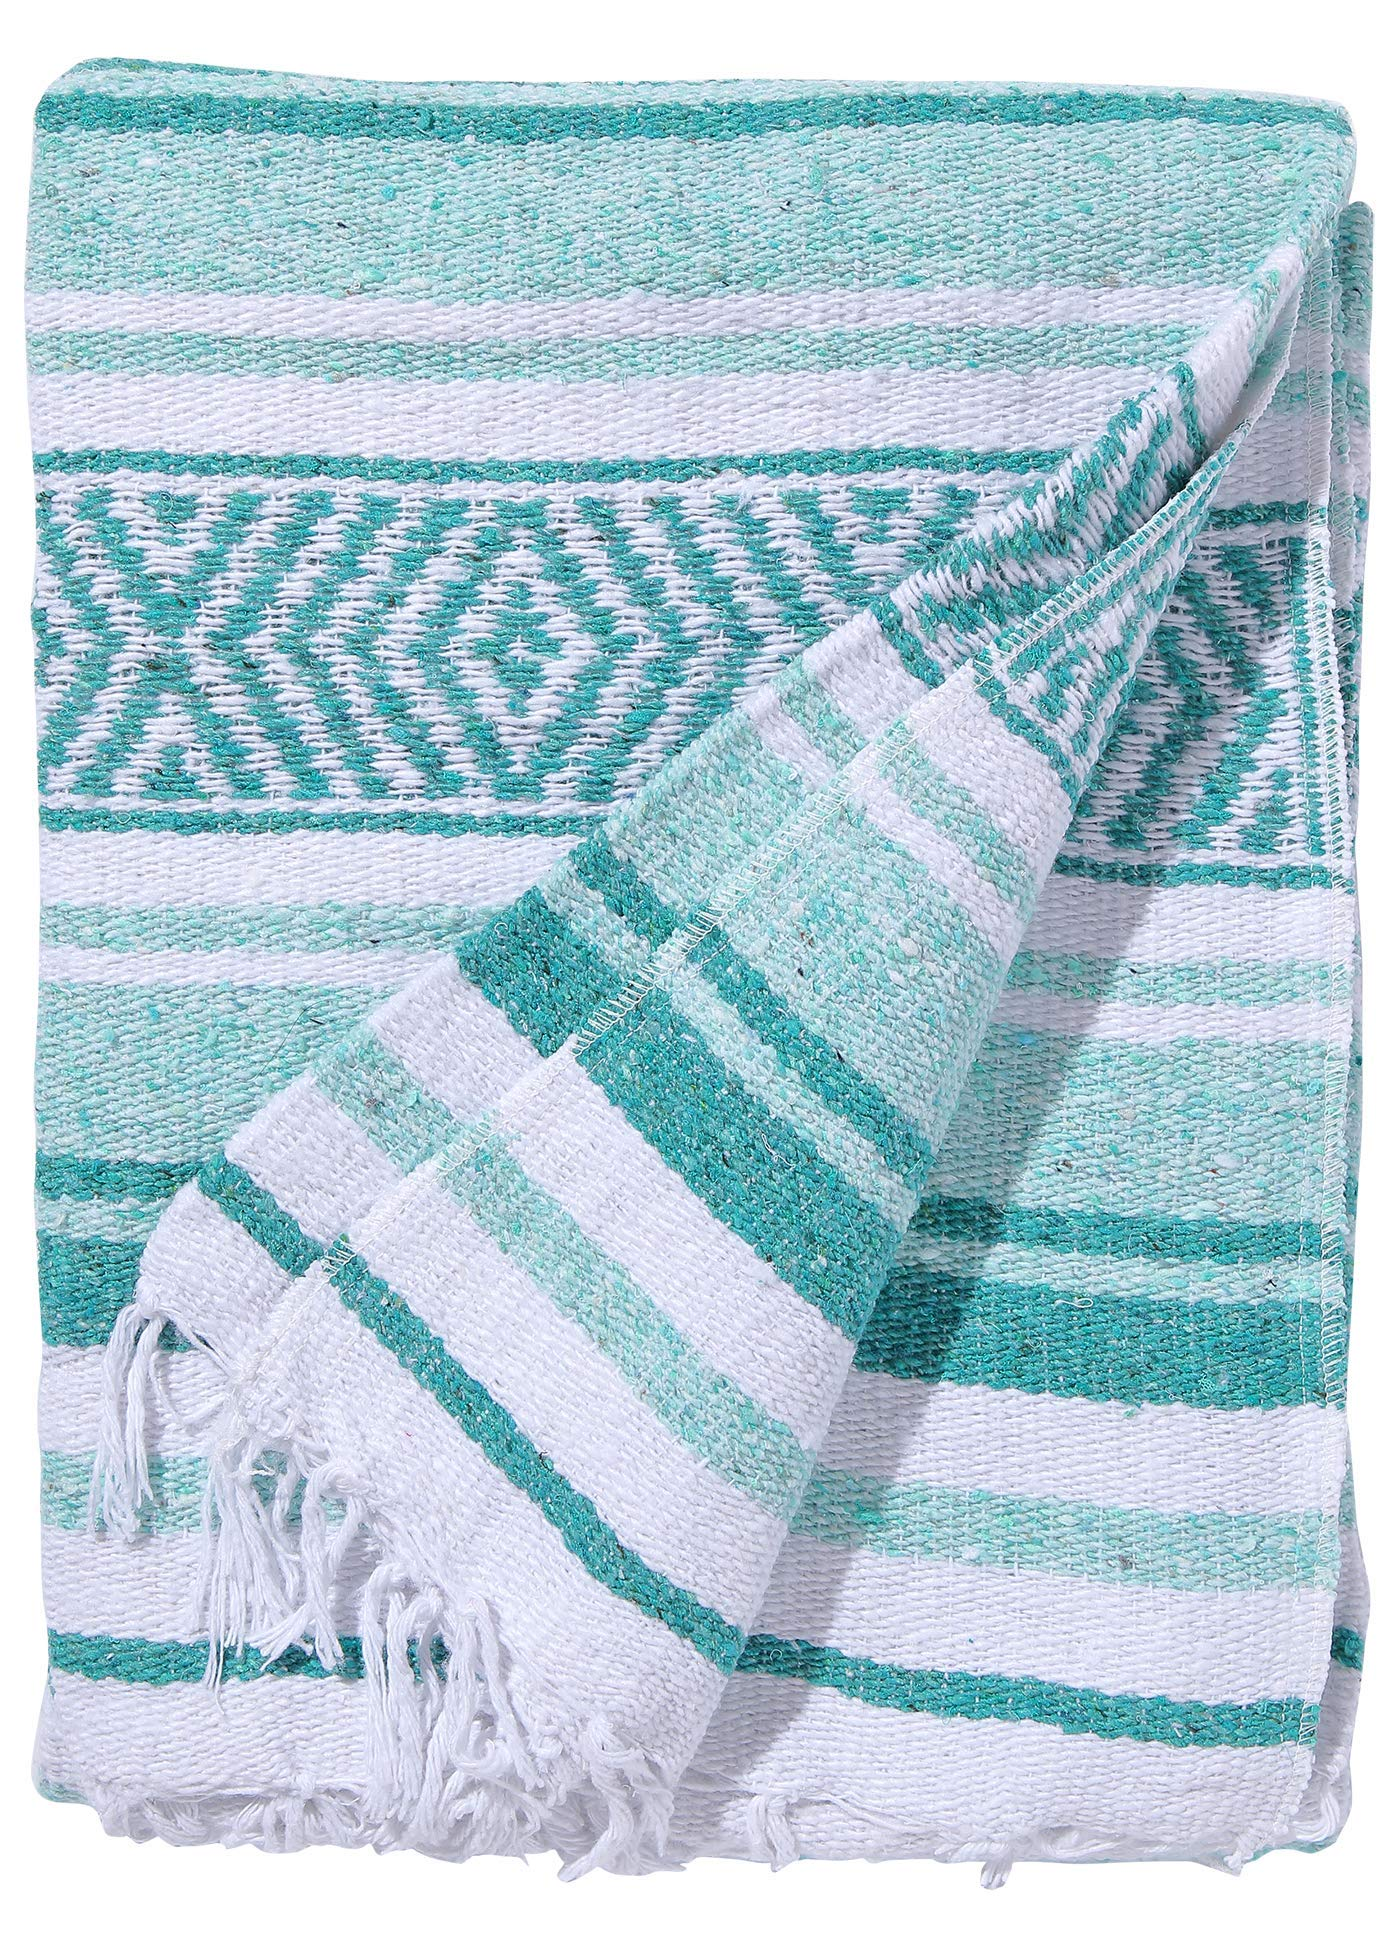 El Paso Designs Mexican Yoga Blanket Colorful 51in x 74in Studio Mexican Falsa Blanket Ideal for Yoga, Camping, Picnic, Beach Blanket, Bedding, Home Decor Soft Woven (Cancun) by El Paso Designs (Image #1)